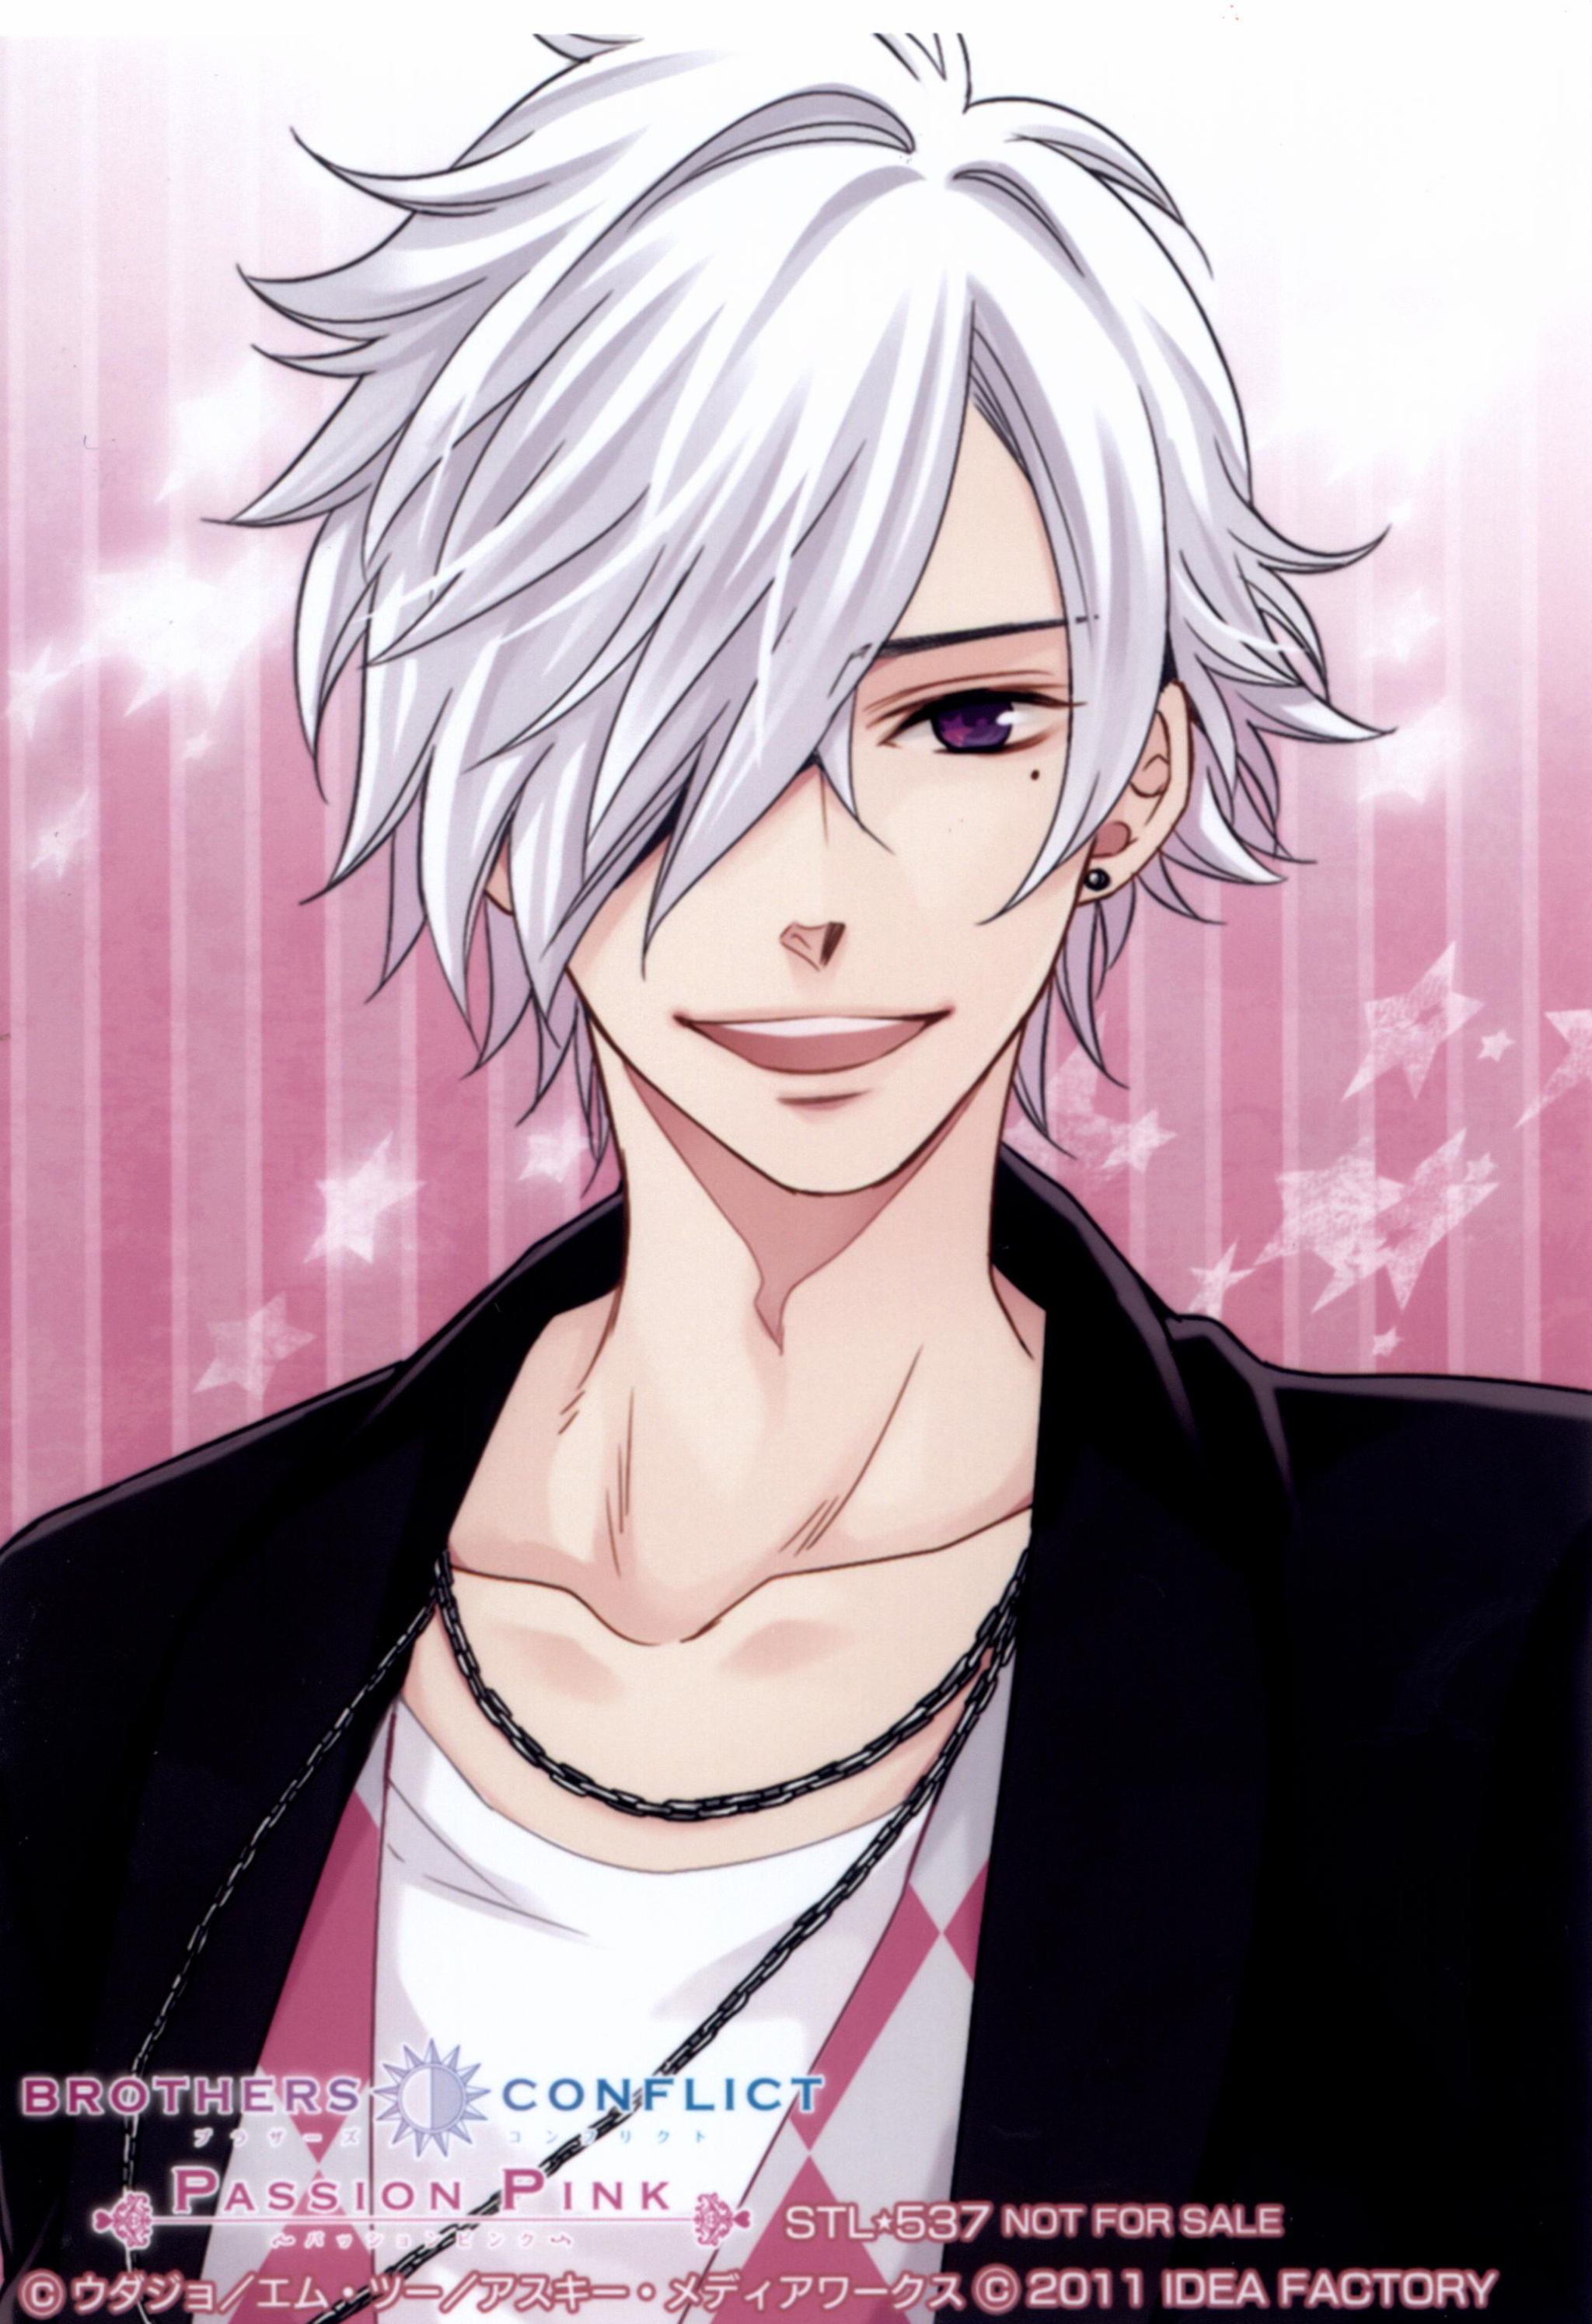 Brothers Conflict Tsubaki Gif Brothers Conflict Tsubaki GifBrothers Conflict Tsubaki Gif